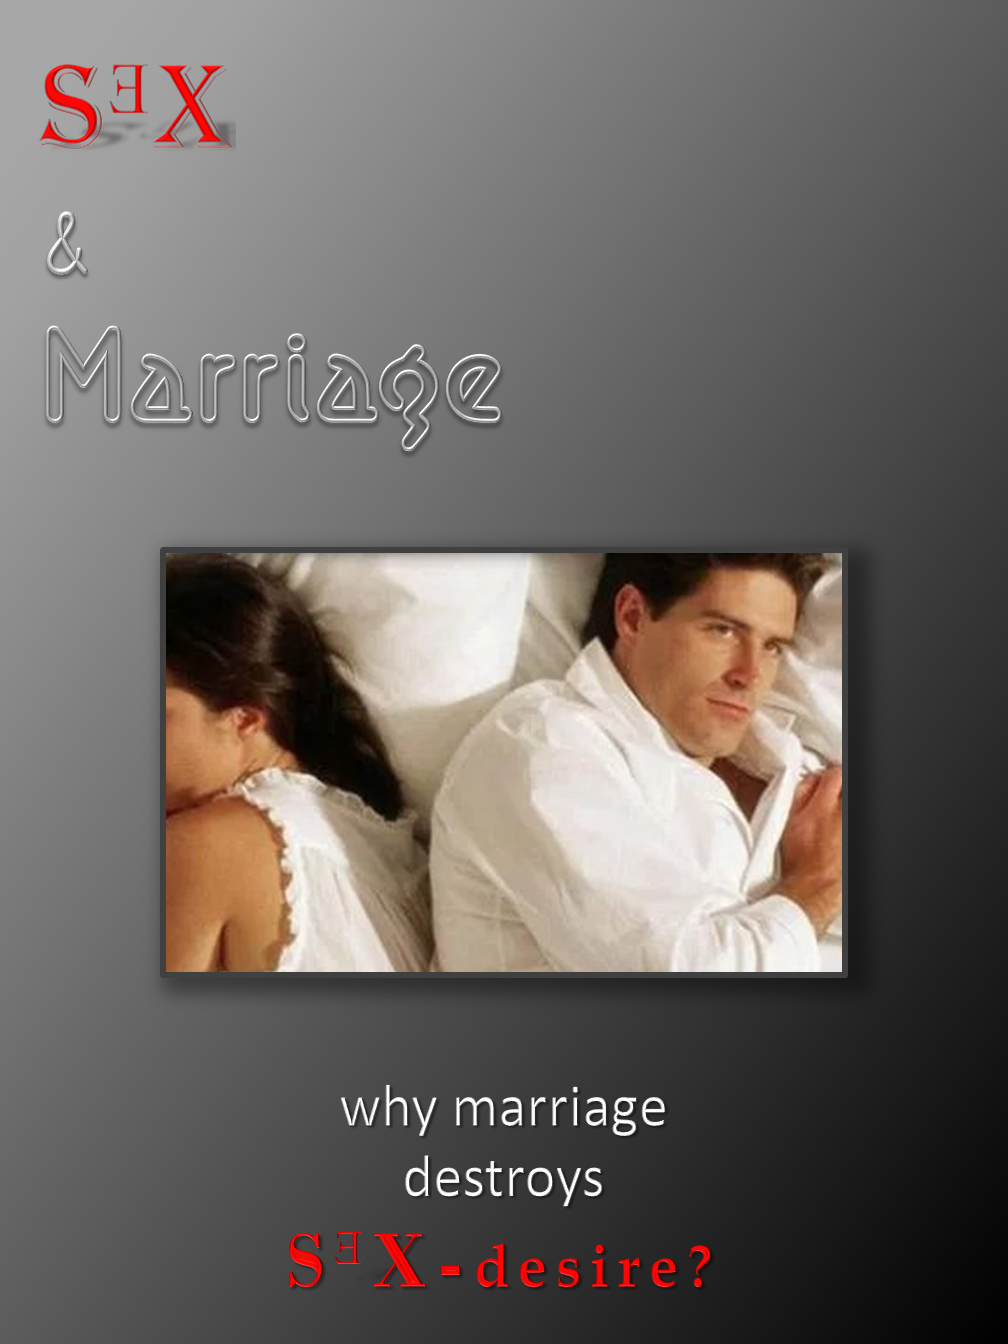 Marriage & S3X